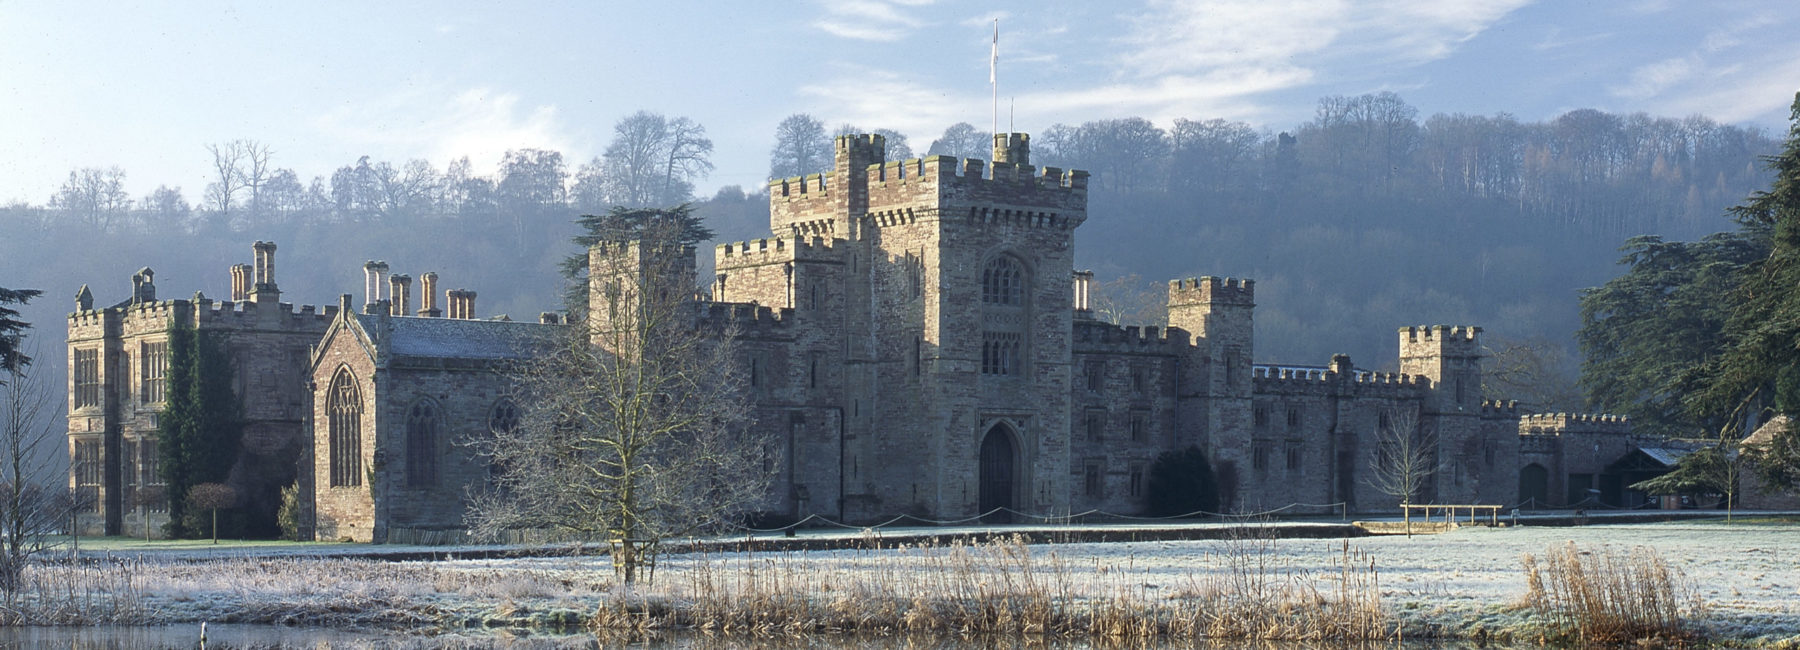 Hampton Court Castle on a frosty morning by John Perry